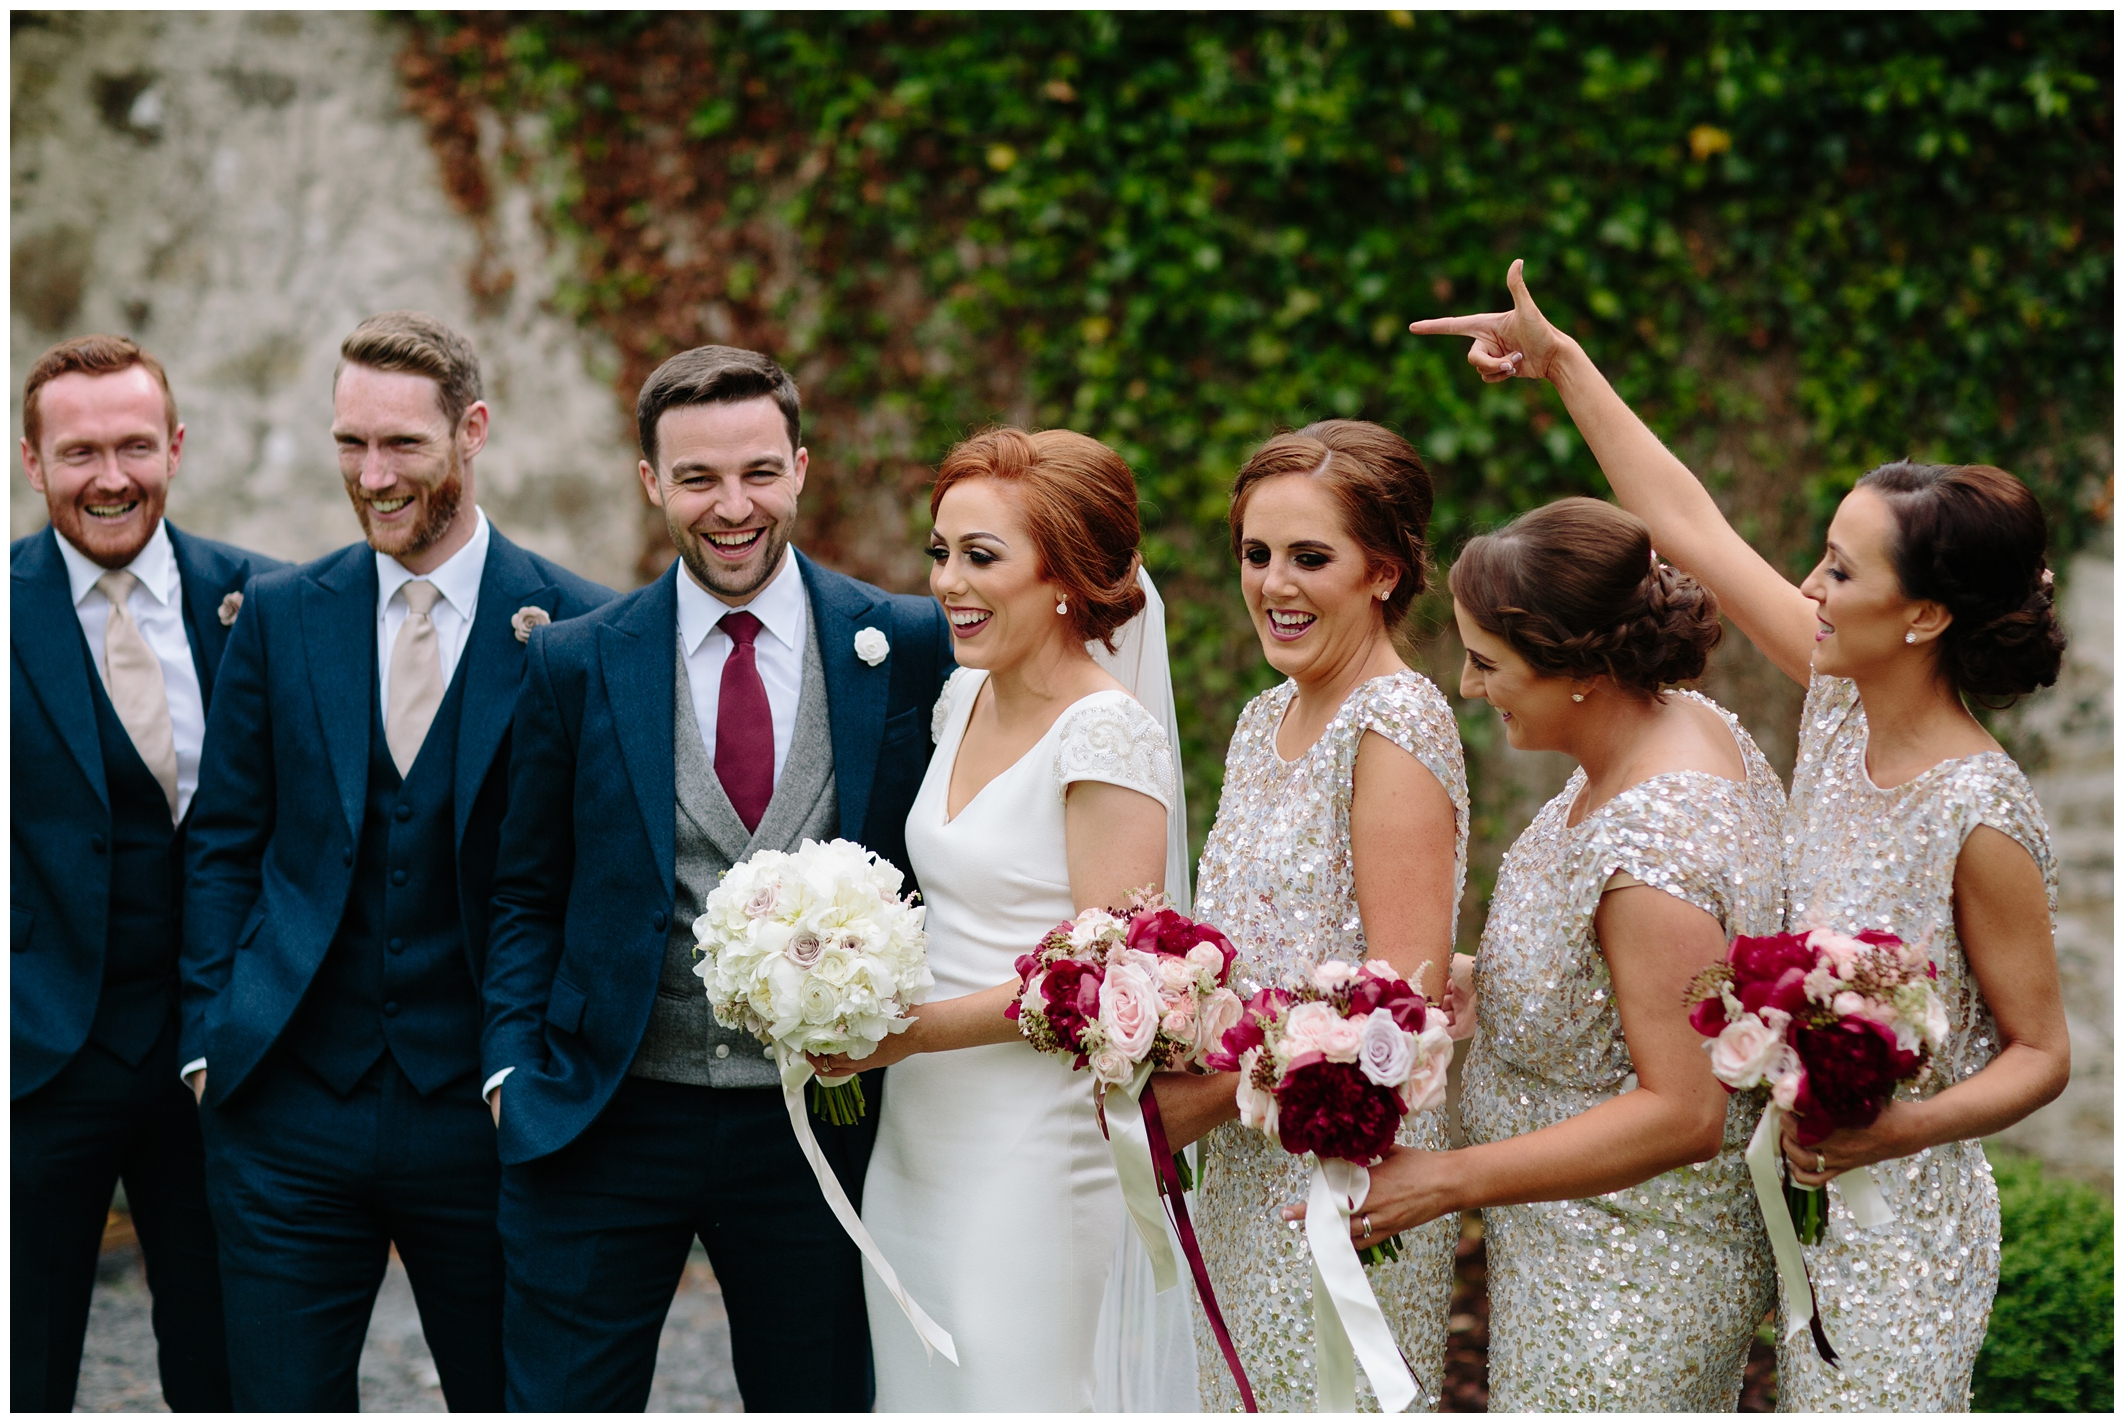 sinead_emmet_farnham_estate_wedding_jude_browne_photography_0100.jpg